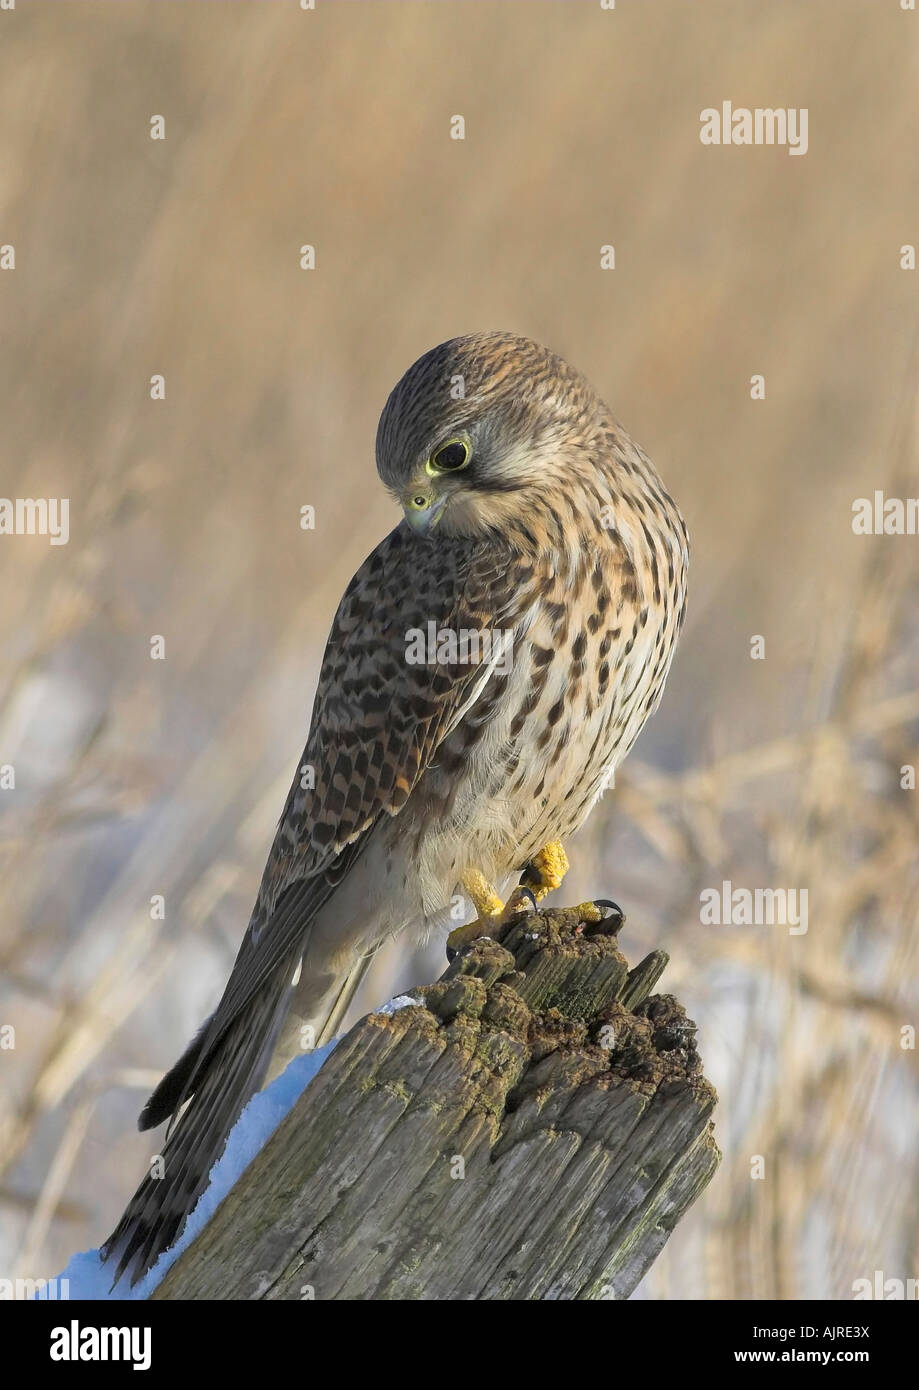 Falco tinnunculus - Common Kestrel female perched on fencepole in a graceful winter color portrait - Stock Image